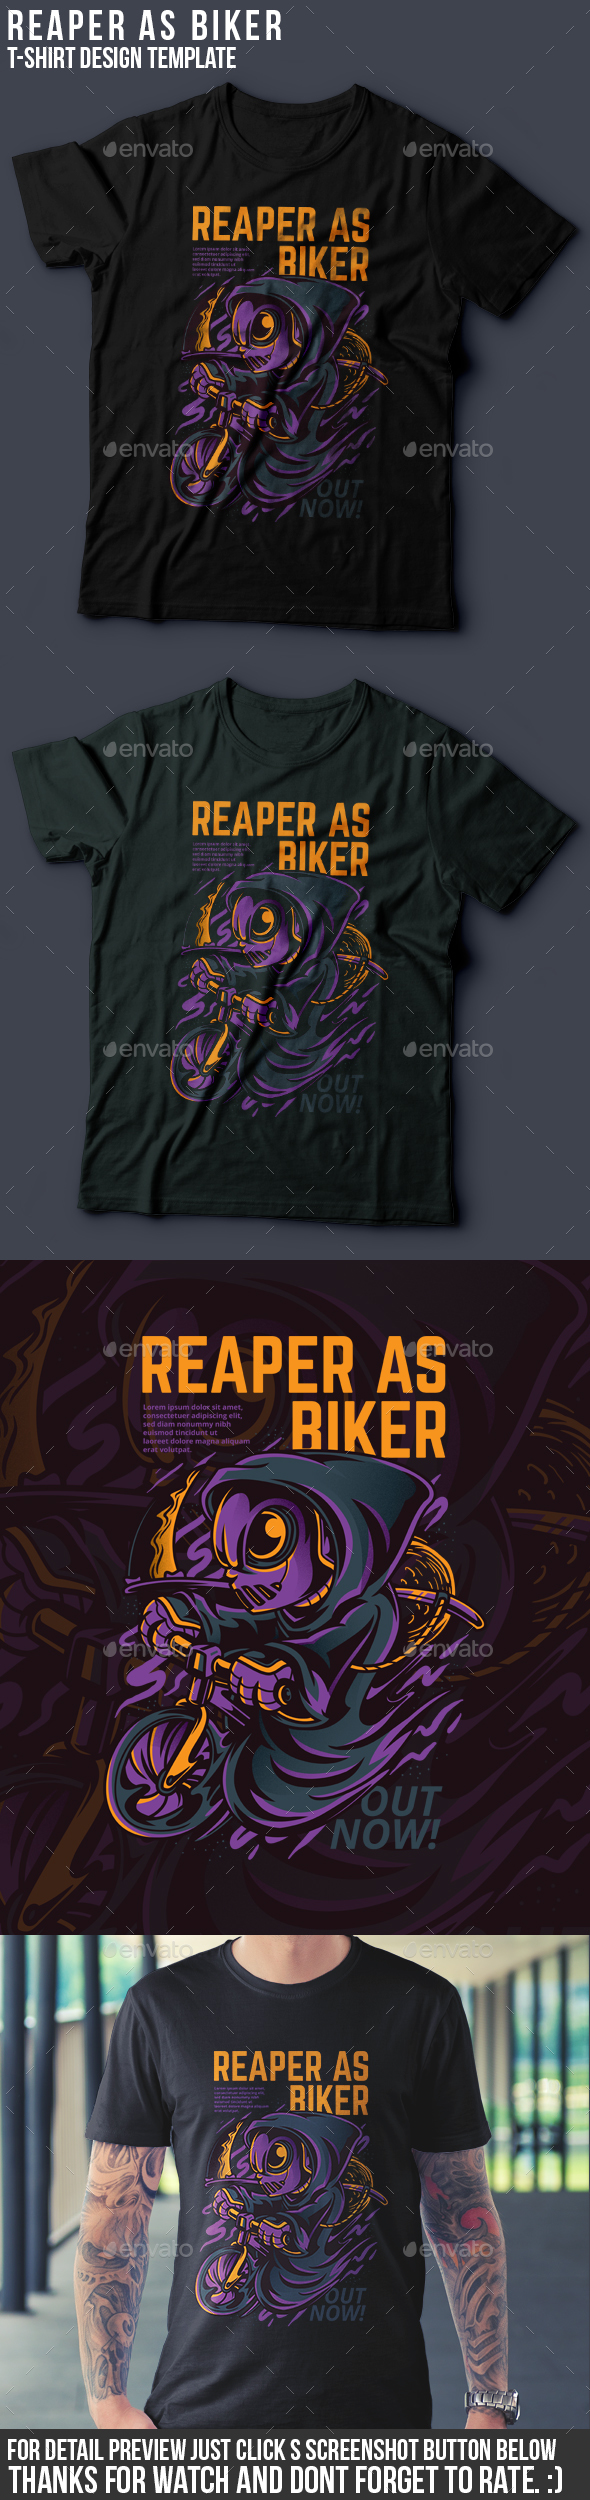 Reaper As Biker T-Shirt Design